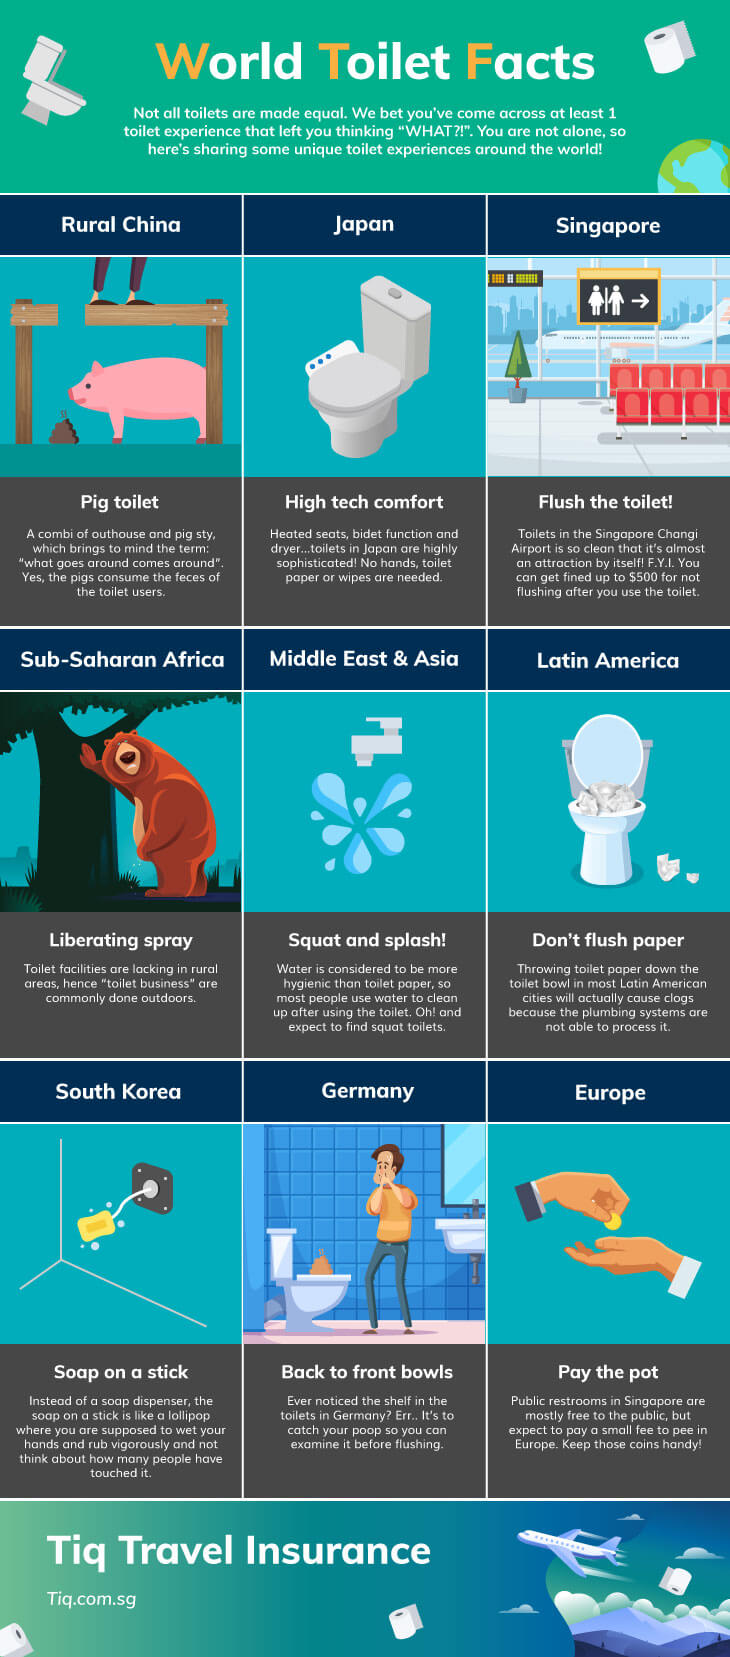 World Toilet Facts infographic by Tiq